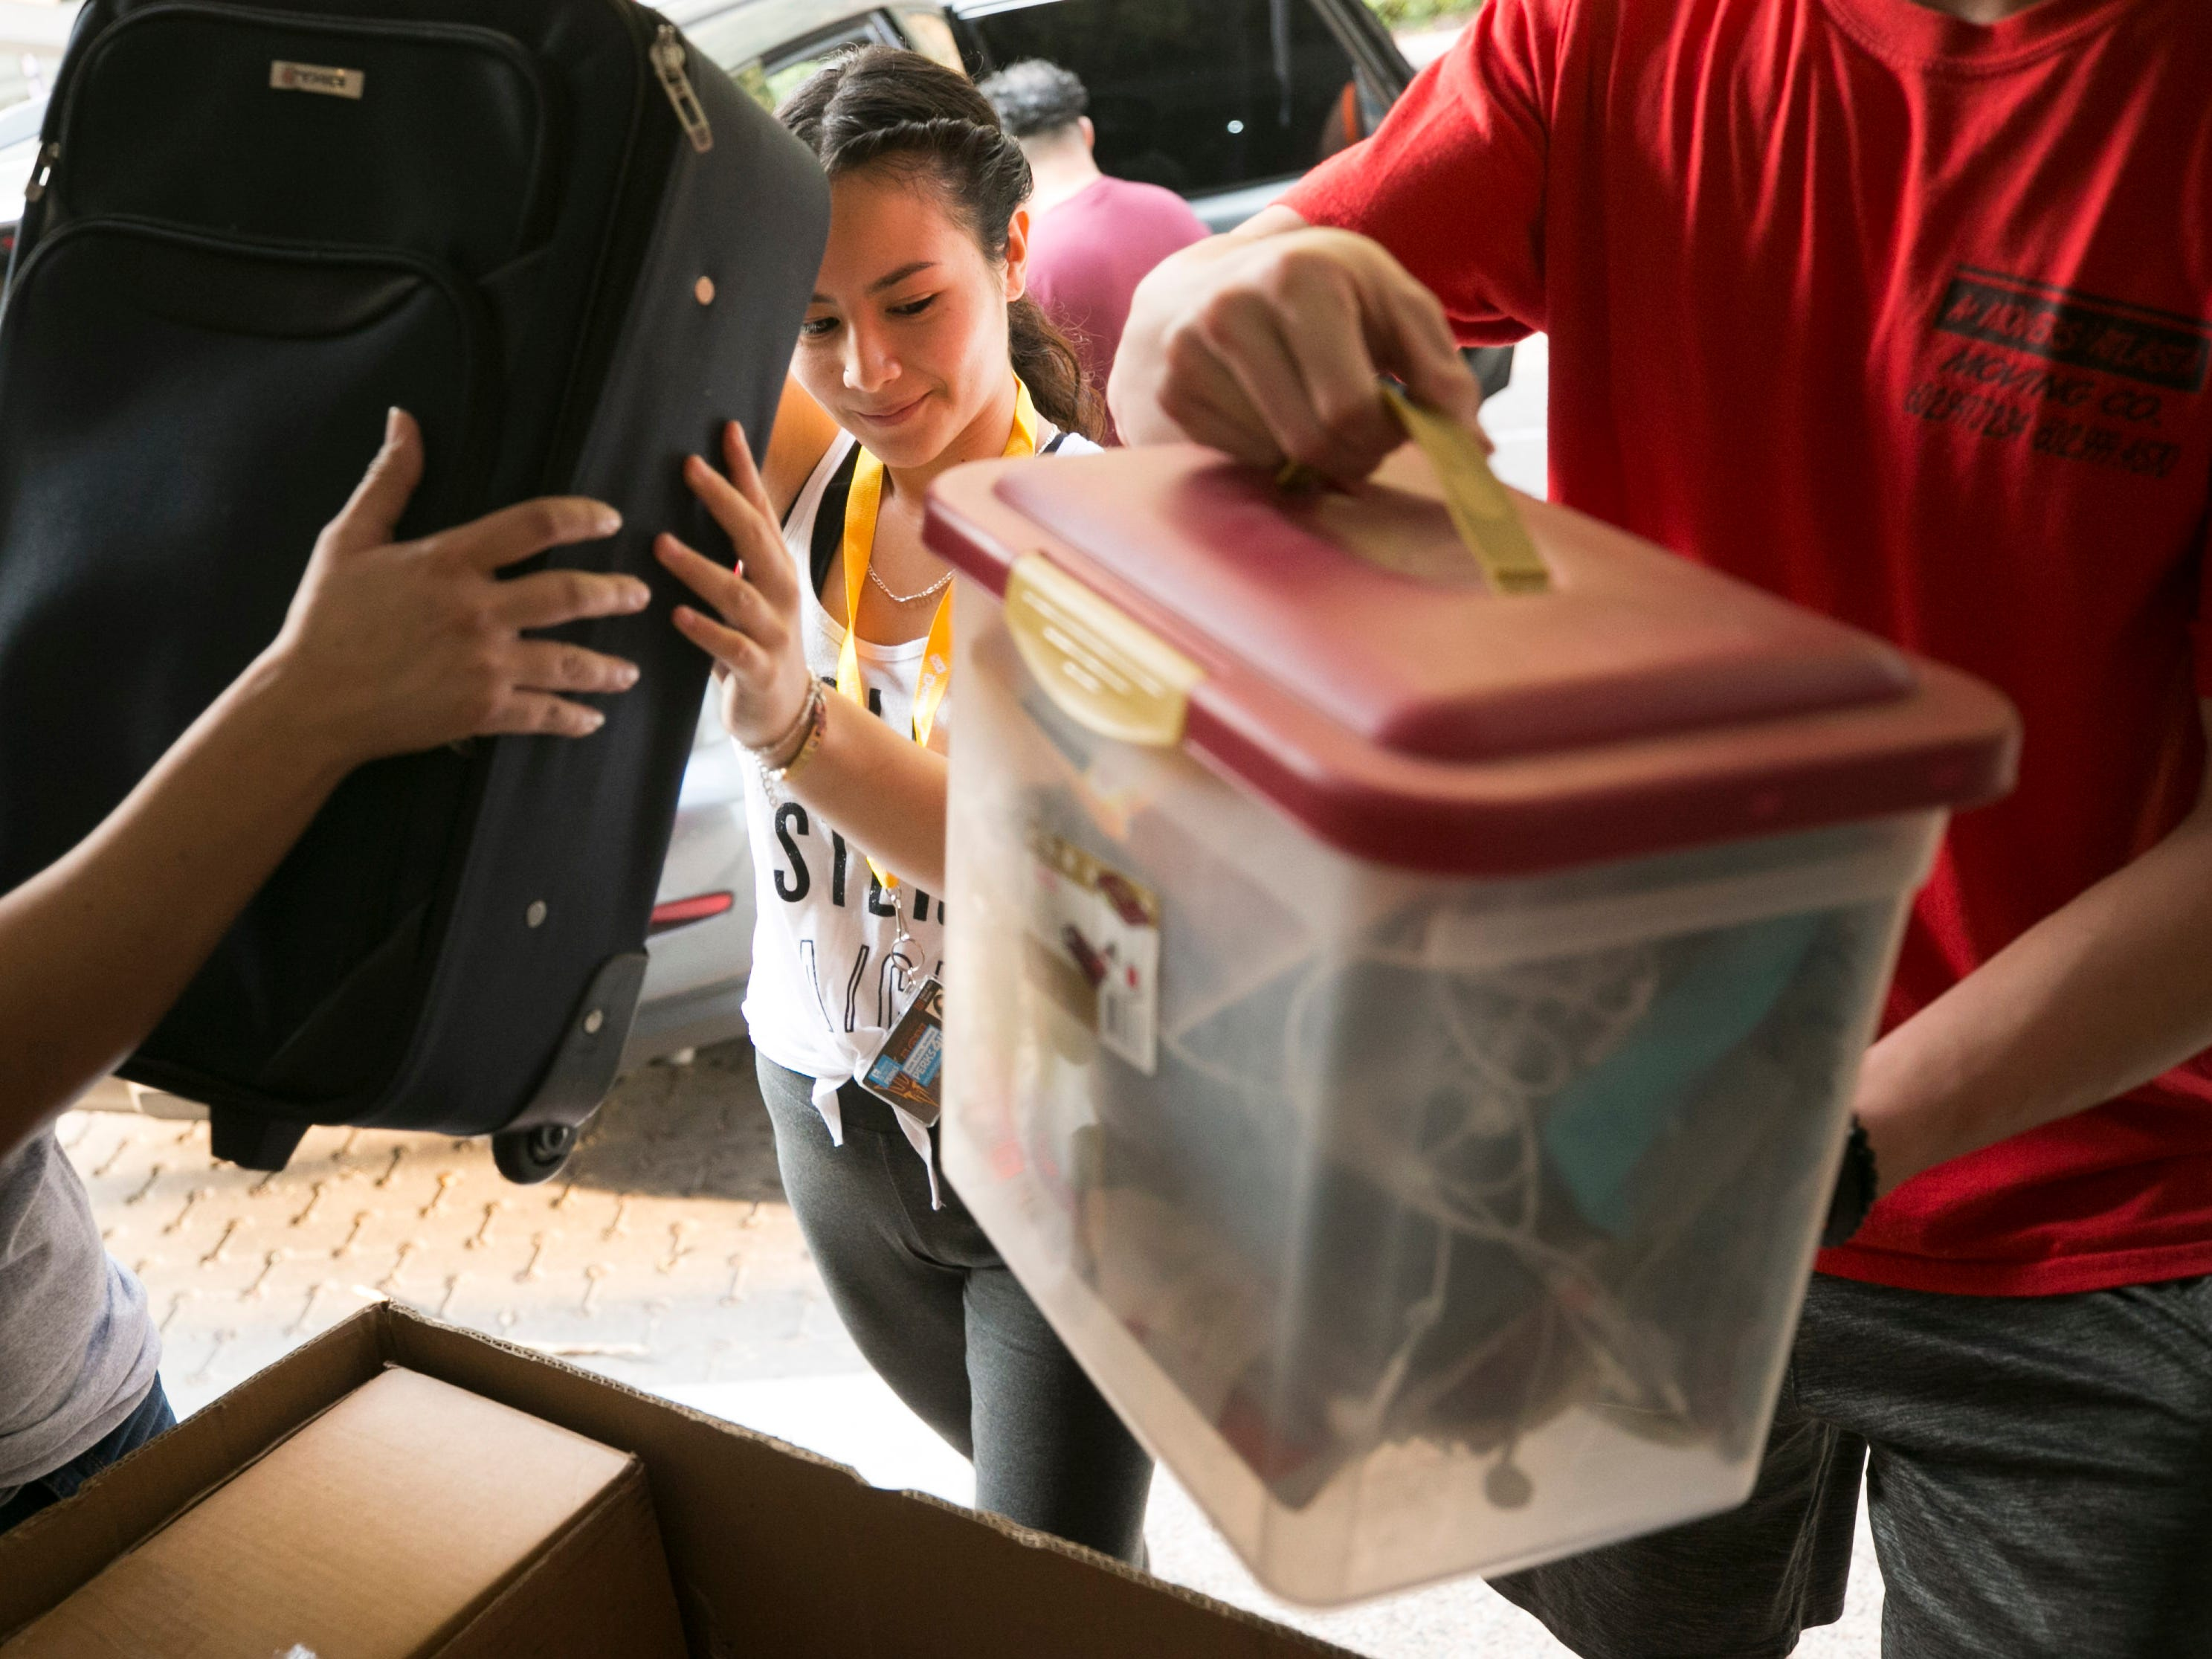 Incoming freshman Melissa Galdamez of Avondale helps get her stuff moved into her ASU dorm at Taylor Place on the ASU campus in downtown Phoenix on Aug. 10, 2018.